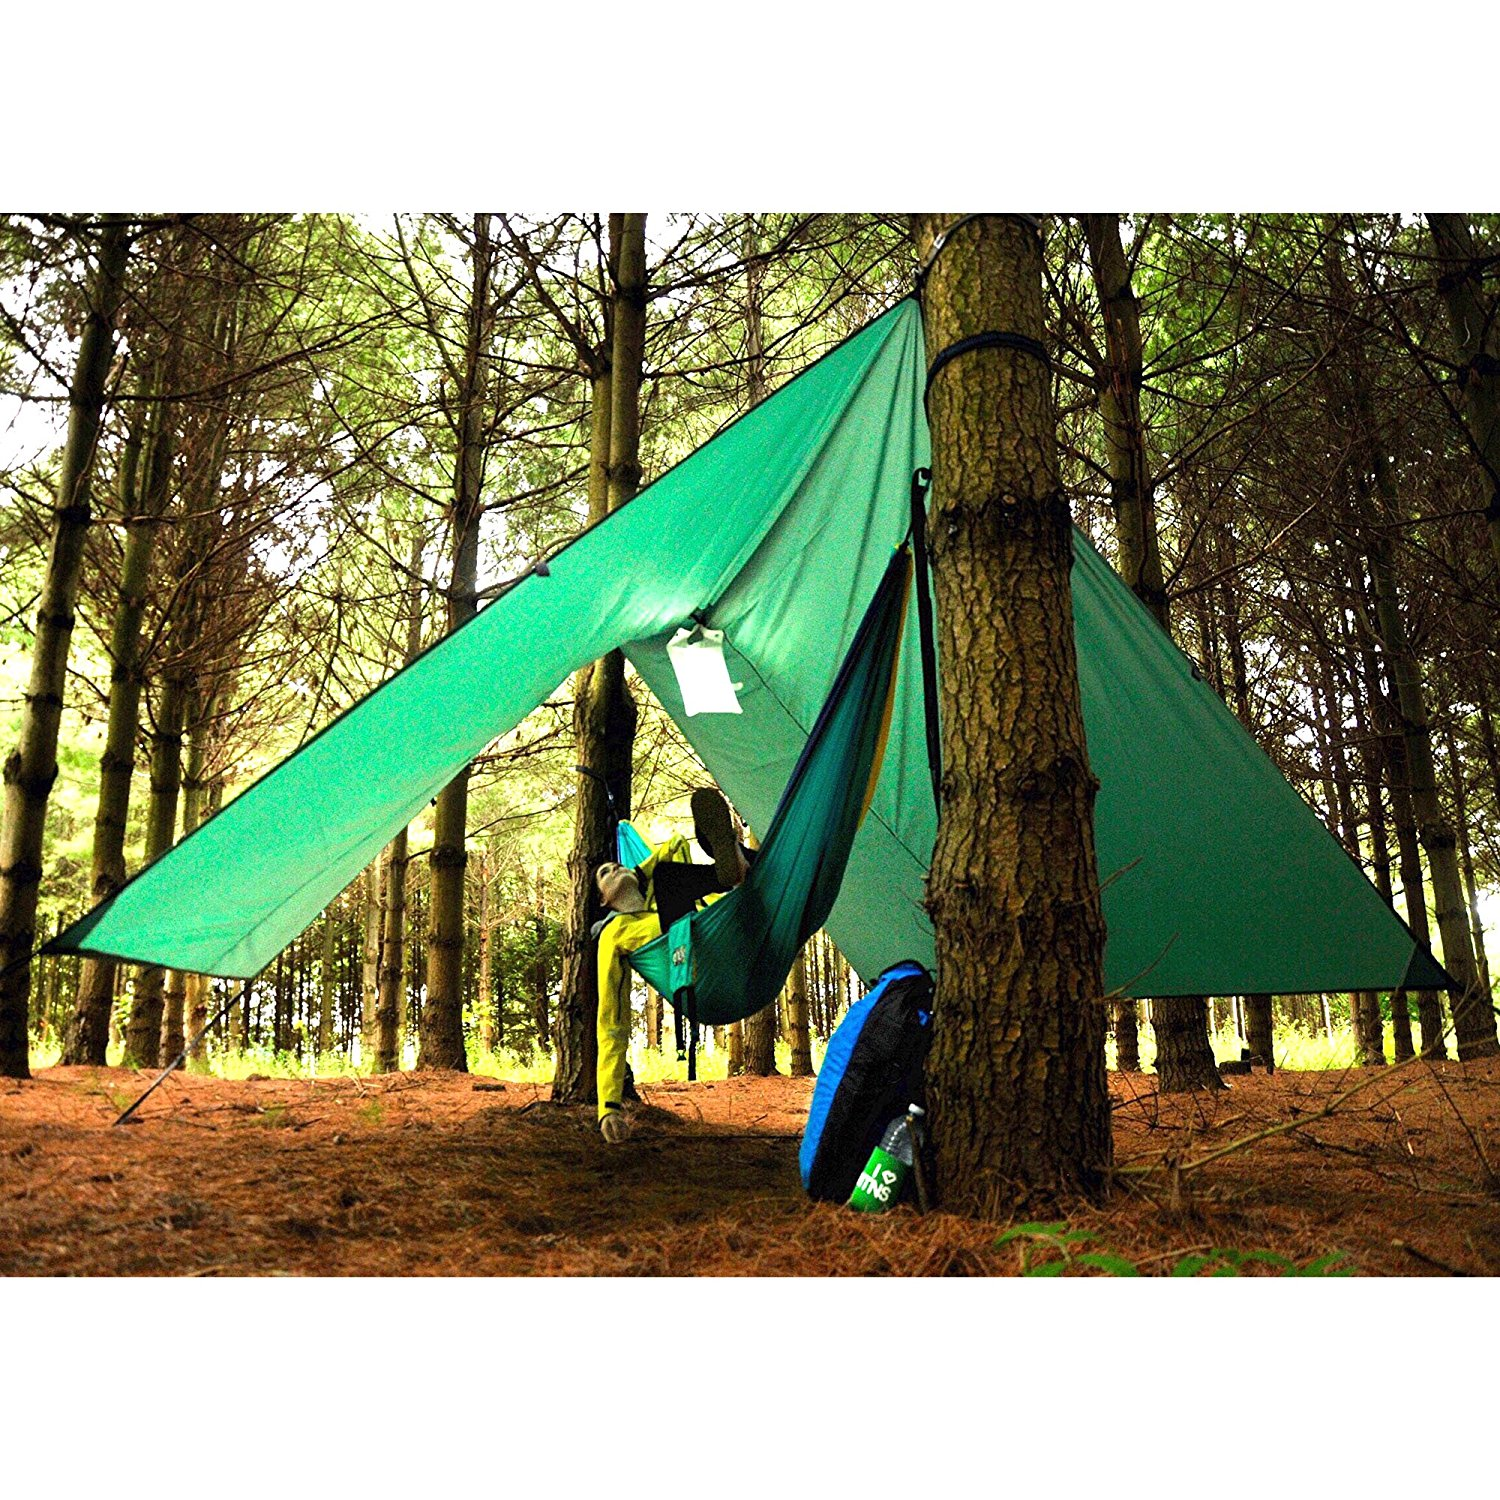 sc 1 st  Tent Buying Guide & The Best Tarp Tent u2013 A Lightweight Tarp For Backpacking or Camping